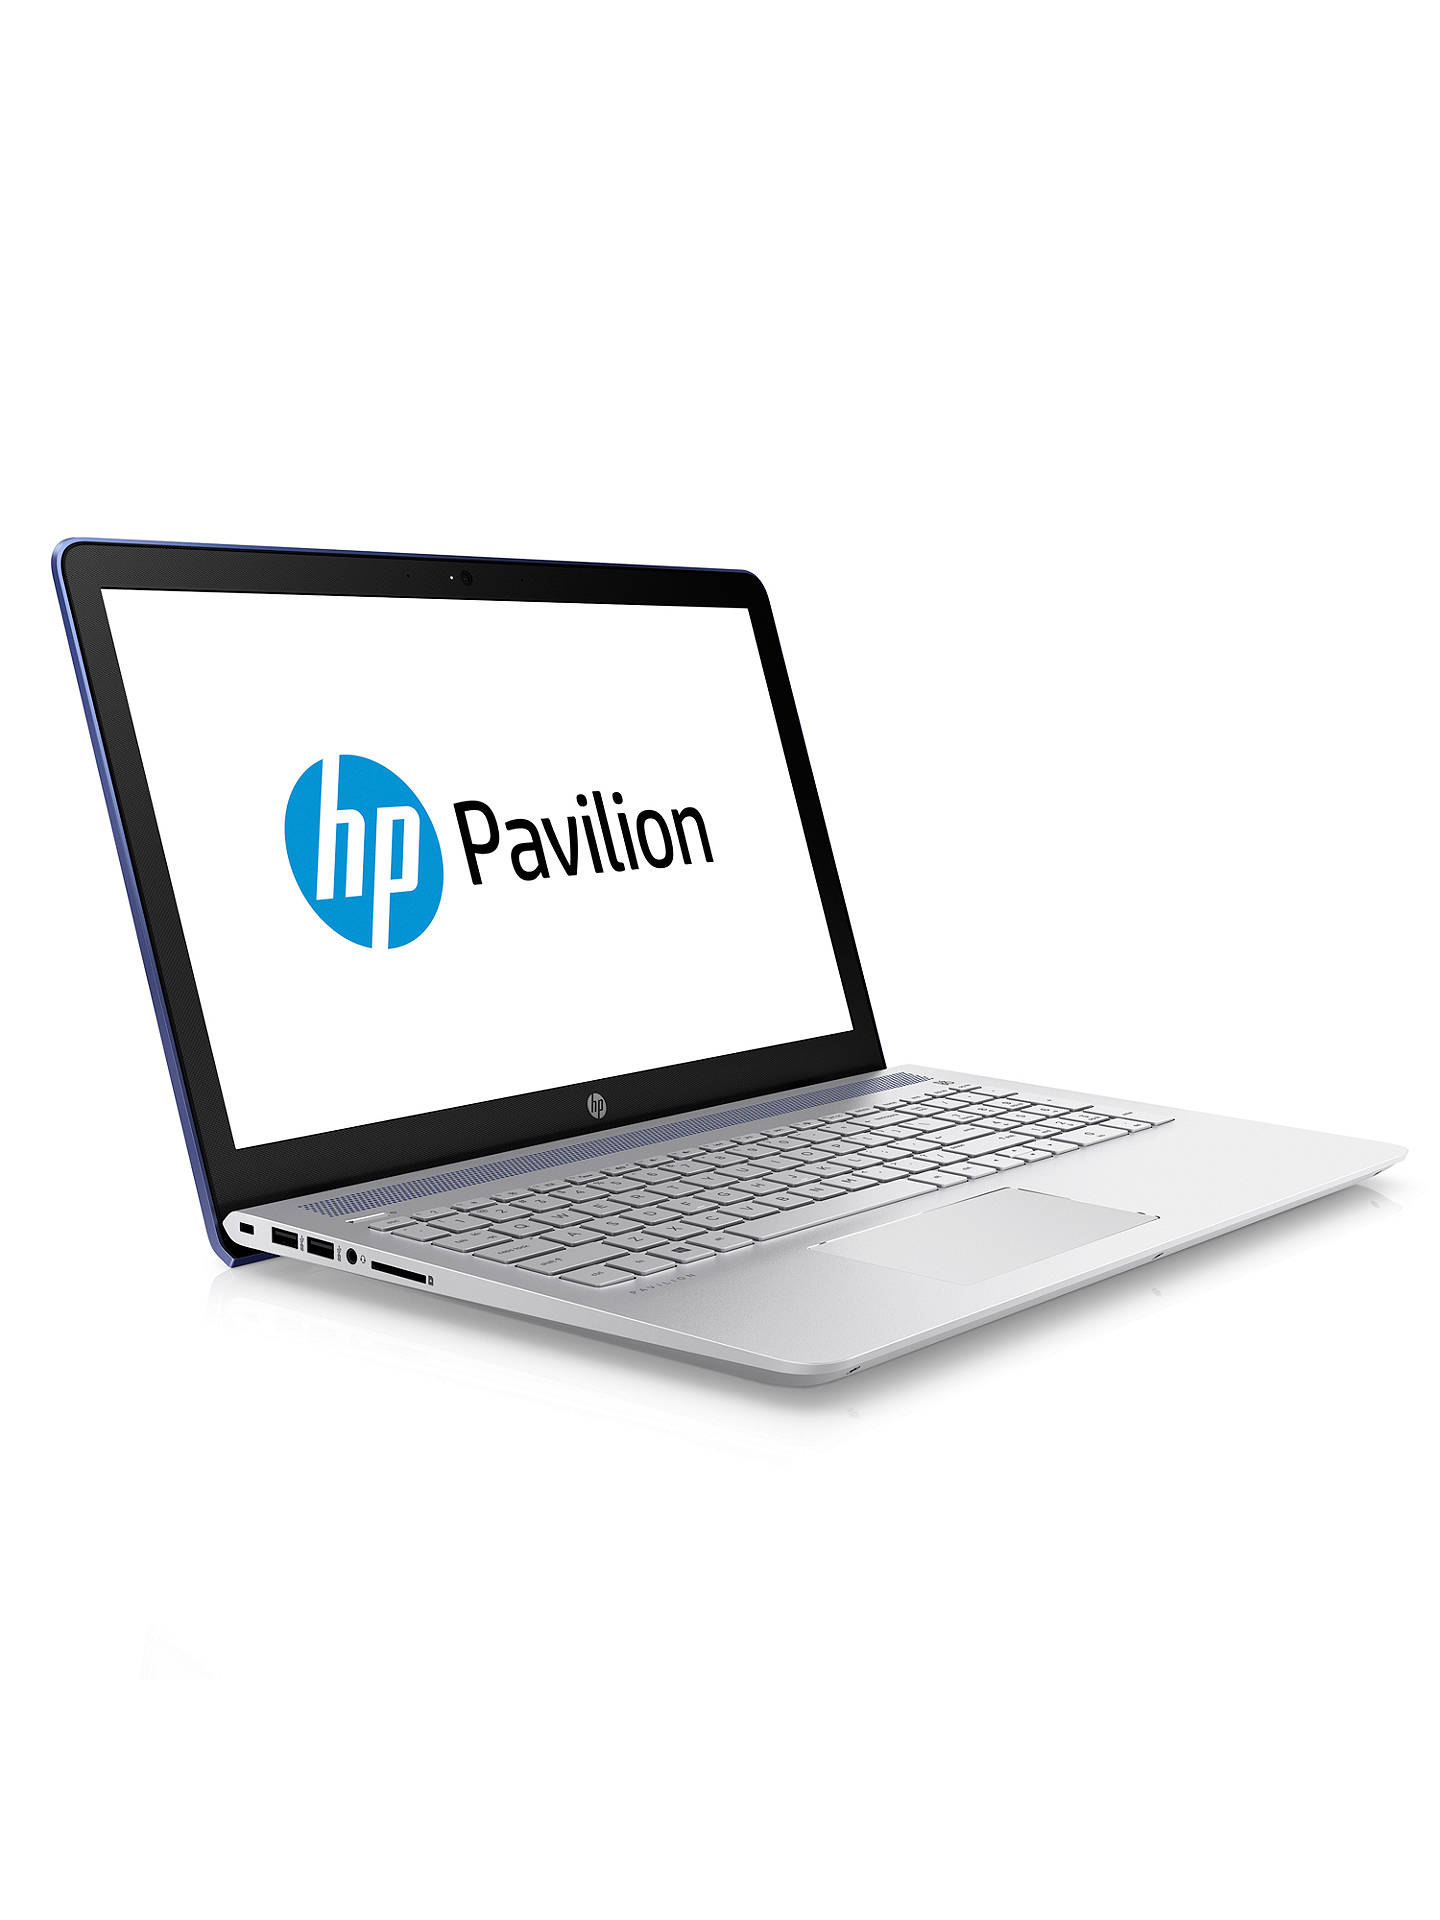 HP Pavilion 15 Laptop, Intel Core i3, 8GB RAM, 1TB, 15 6